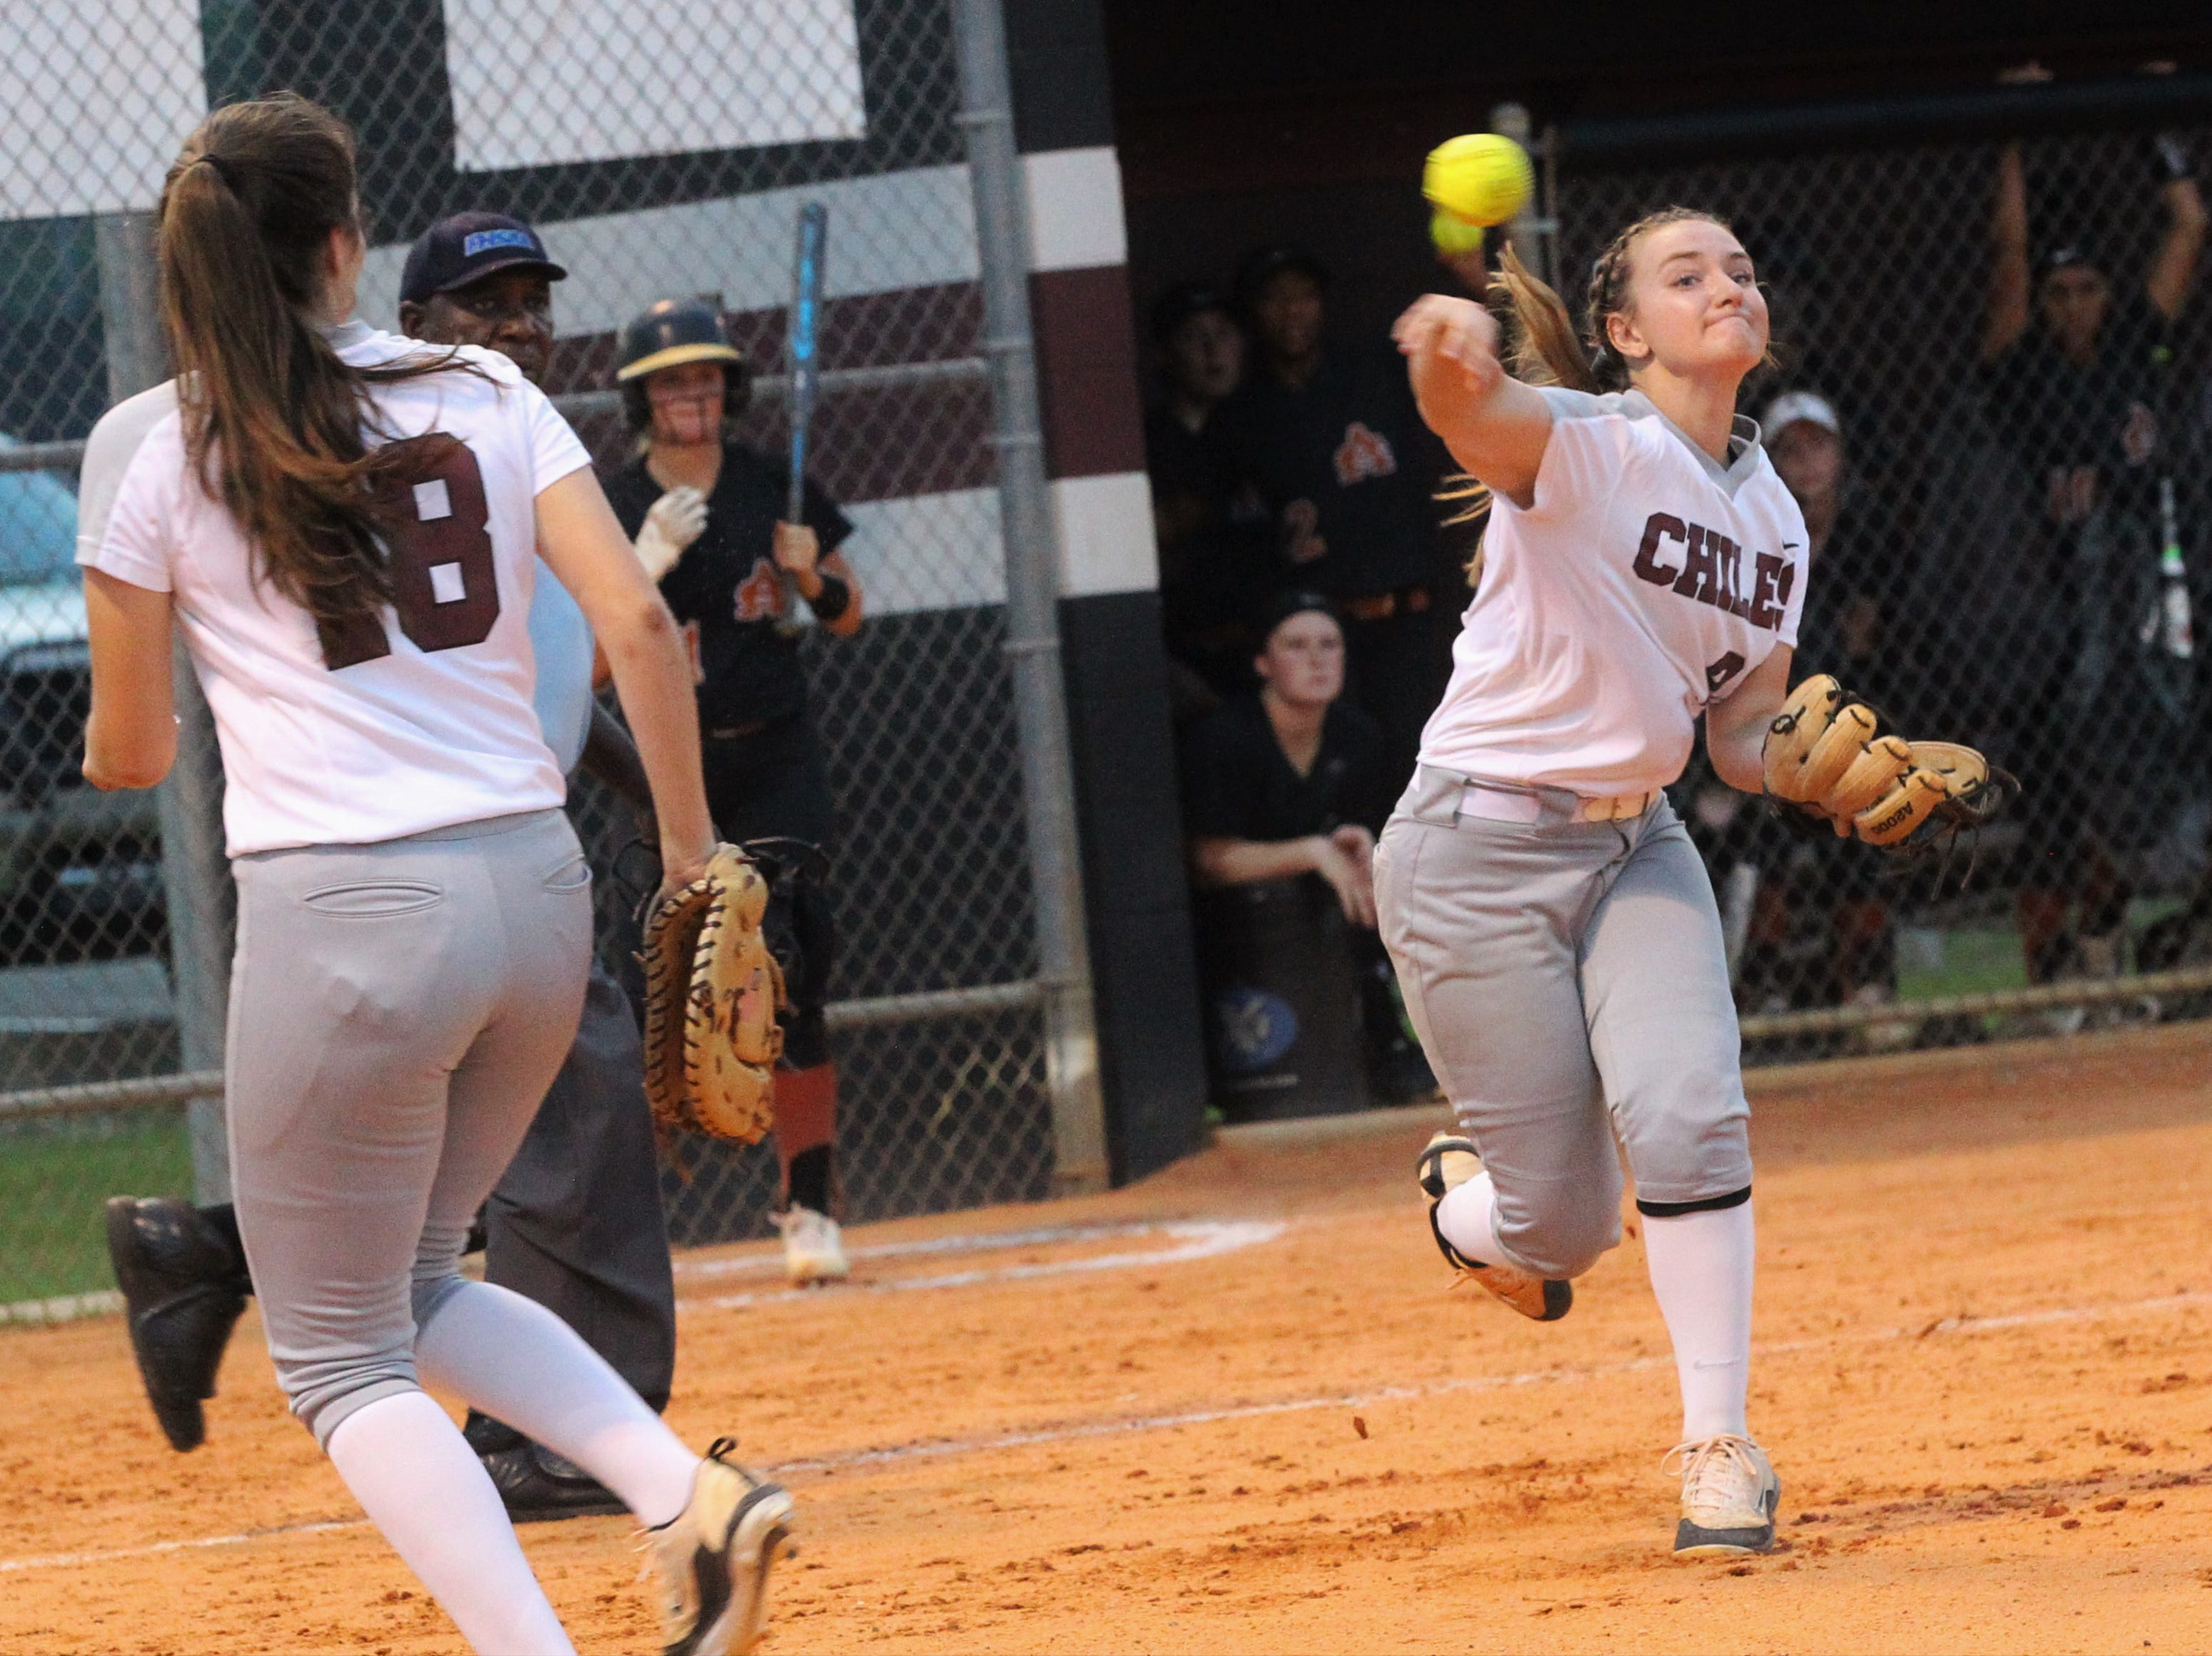 Chiles third baseman Sierra Jevyak throws to first as the Timberwolves beat Atlantic Coast 6-4 during a Region 1-8A quarterfinal softball game on Wednesday, May 8, 2019.